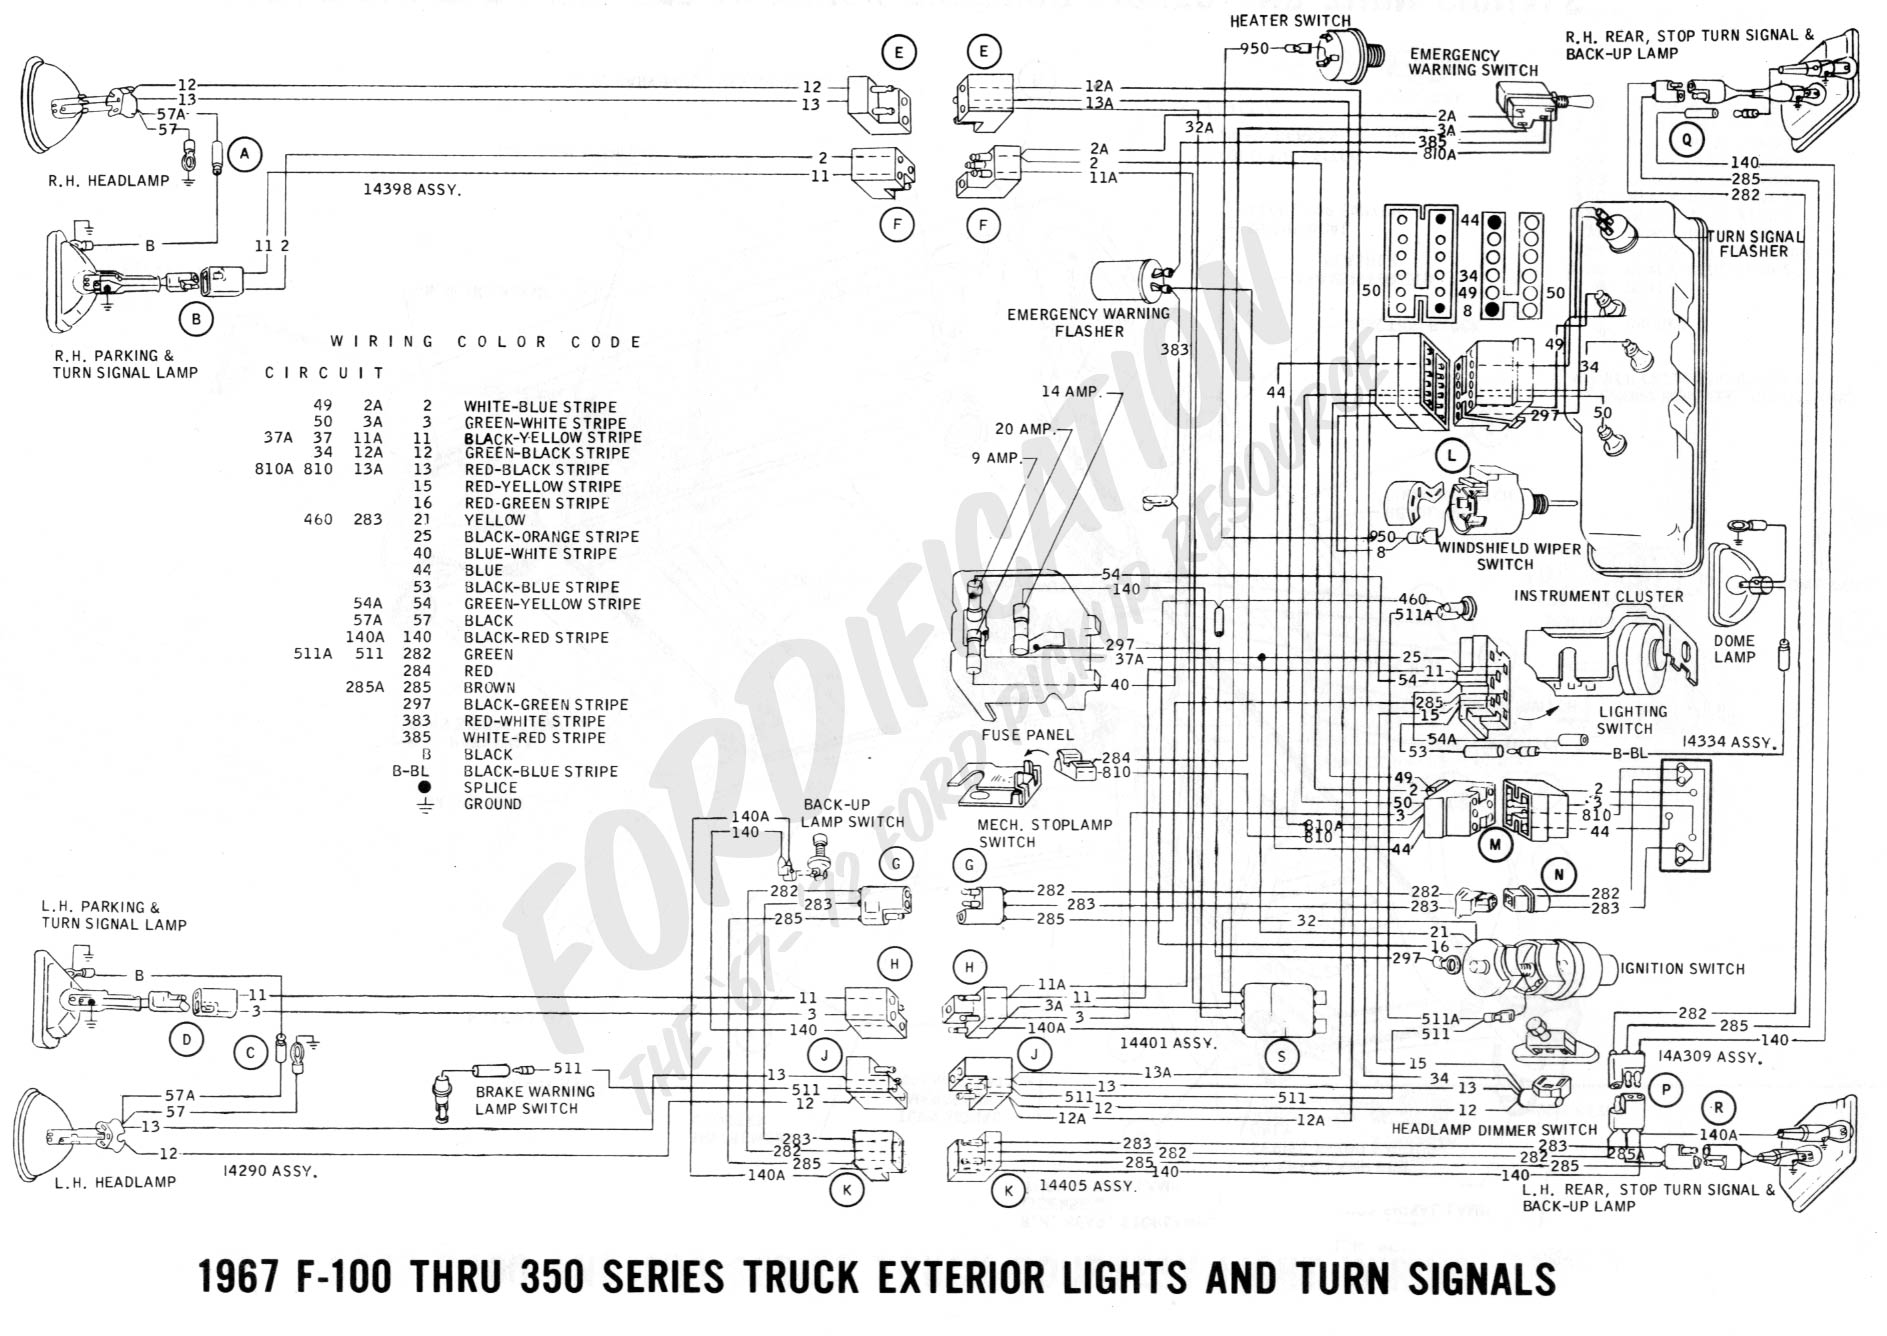 ford f fuse box diagram 2001 ford f250 fuse panel diagram 2001 image 2001 ford f250 4x4 wiring diagram 2001 discover